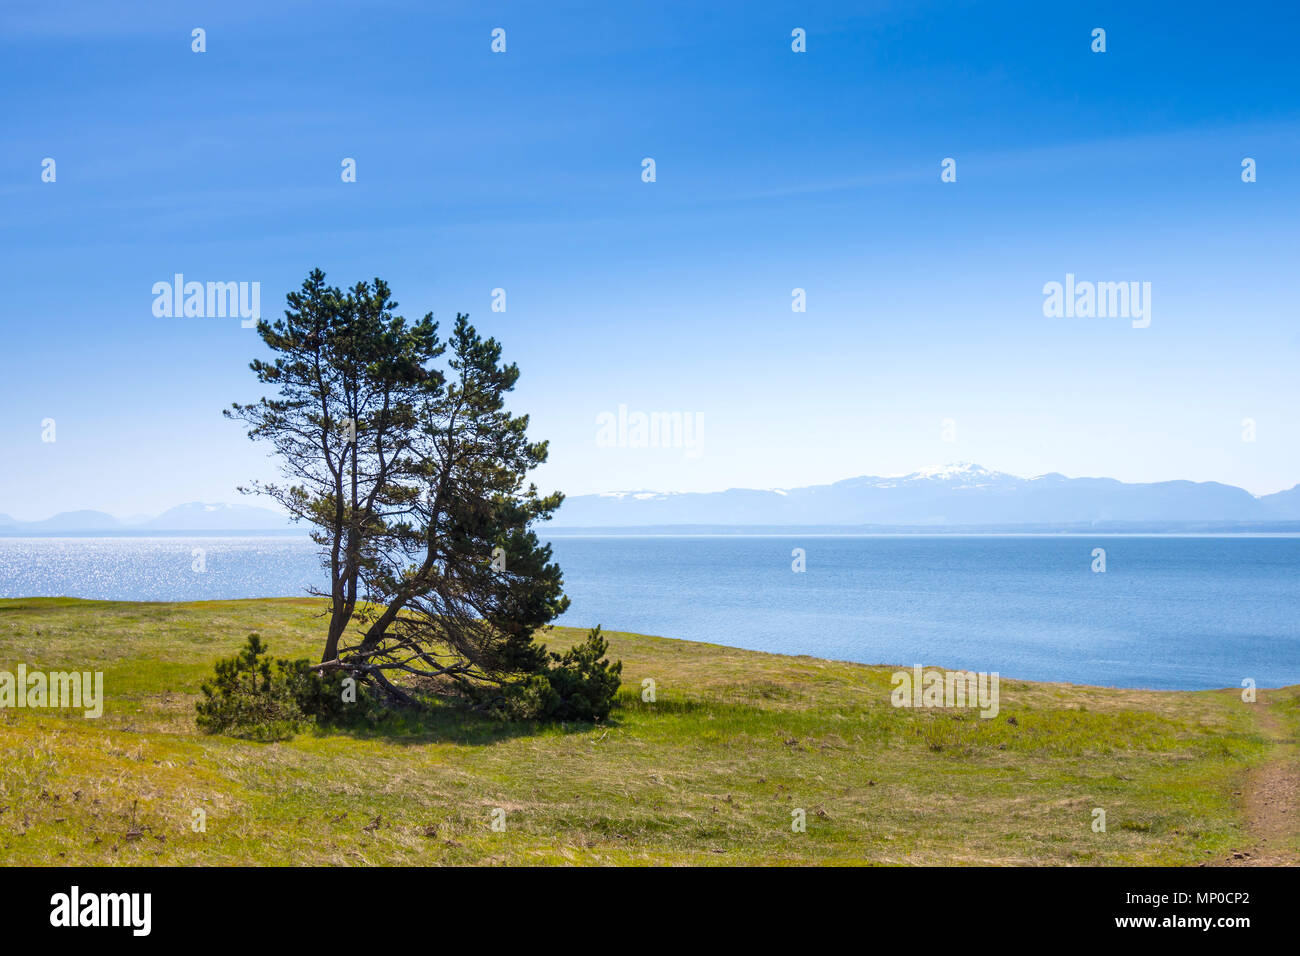 Coastline, Helliwell Provincial Park, Hornby Island, BC, Canada. - Stock Image